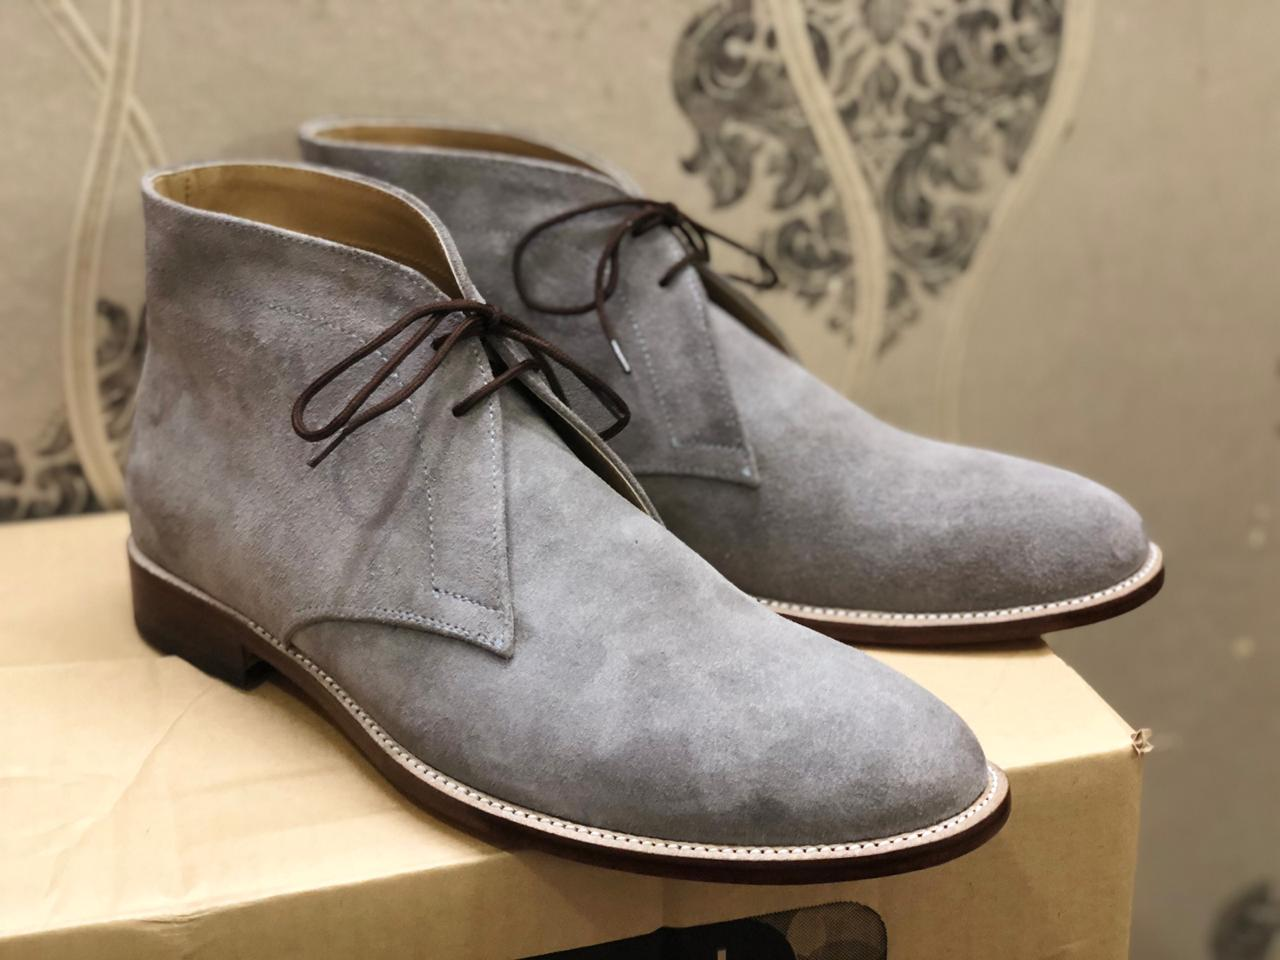 Handmade Men's Half Ankle Gray Suede Lace Up Boot For Men's